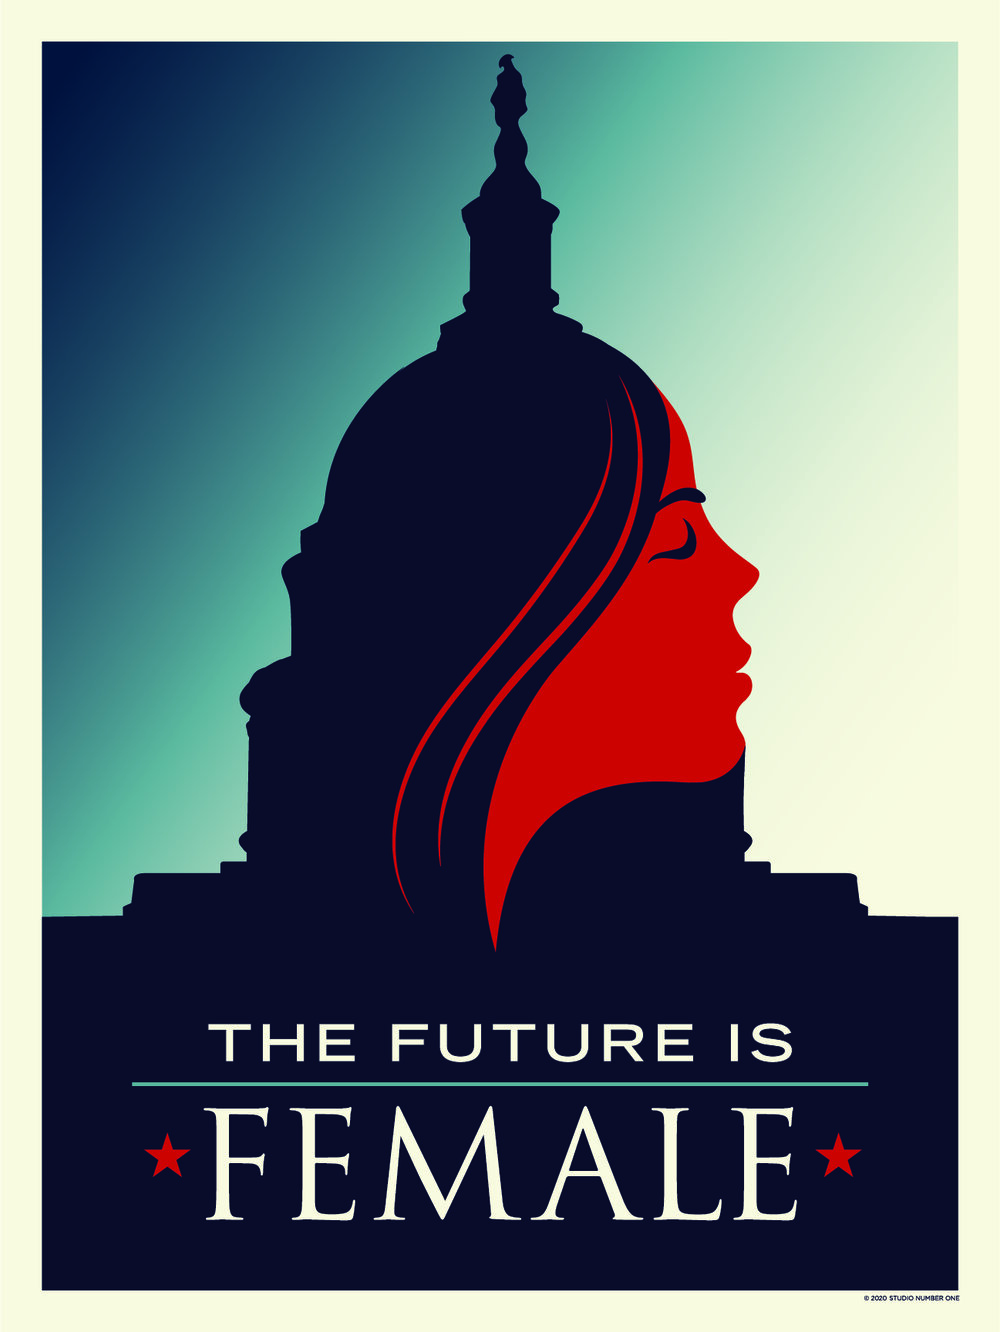 2020 Women's March Poster Art Designed by Studio Number One